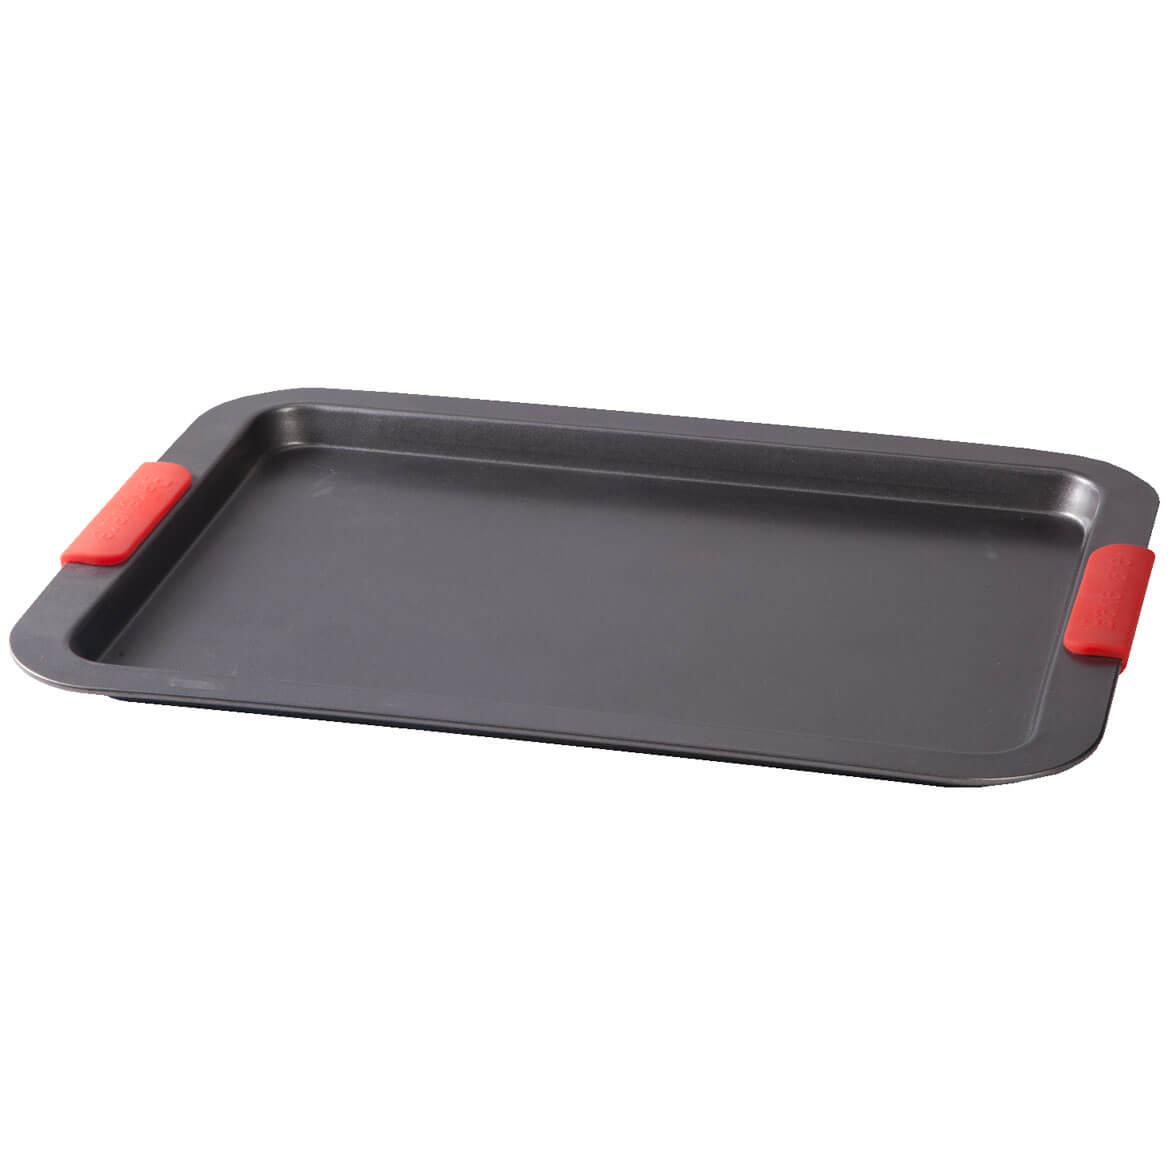 Large Baking Sheet with Red Silicone Handles by HSK-356753